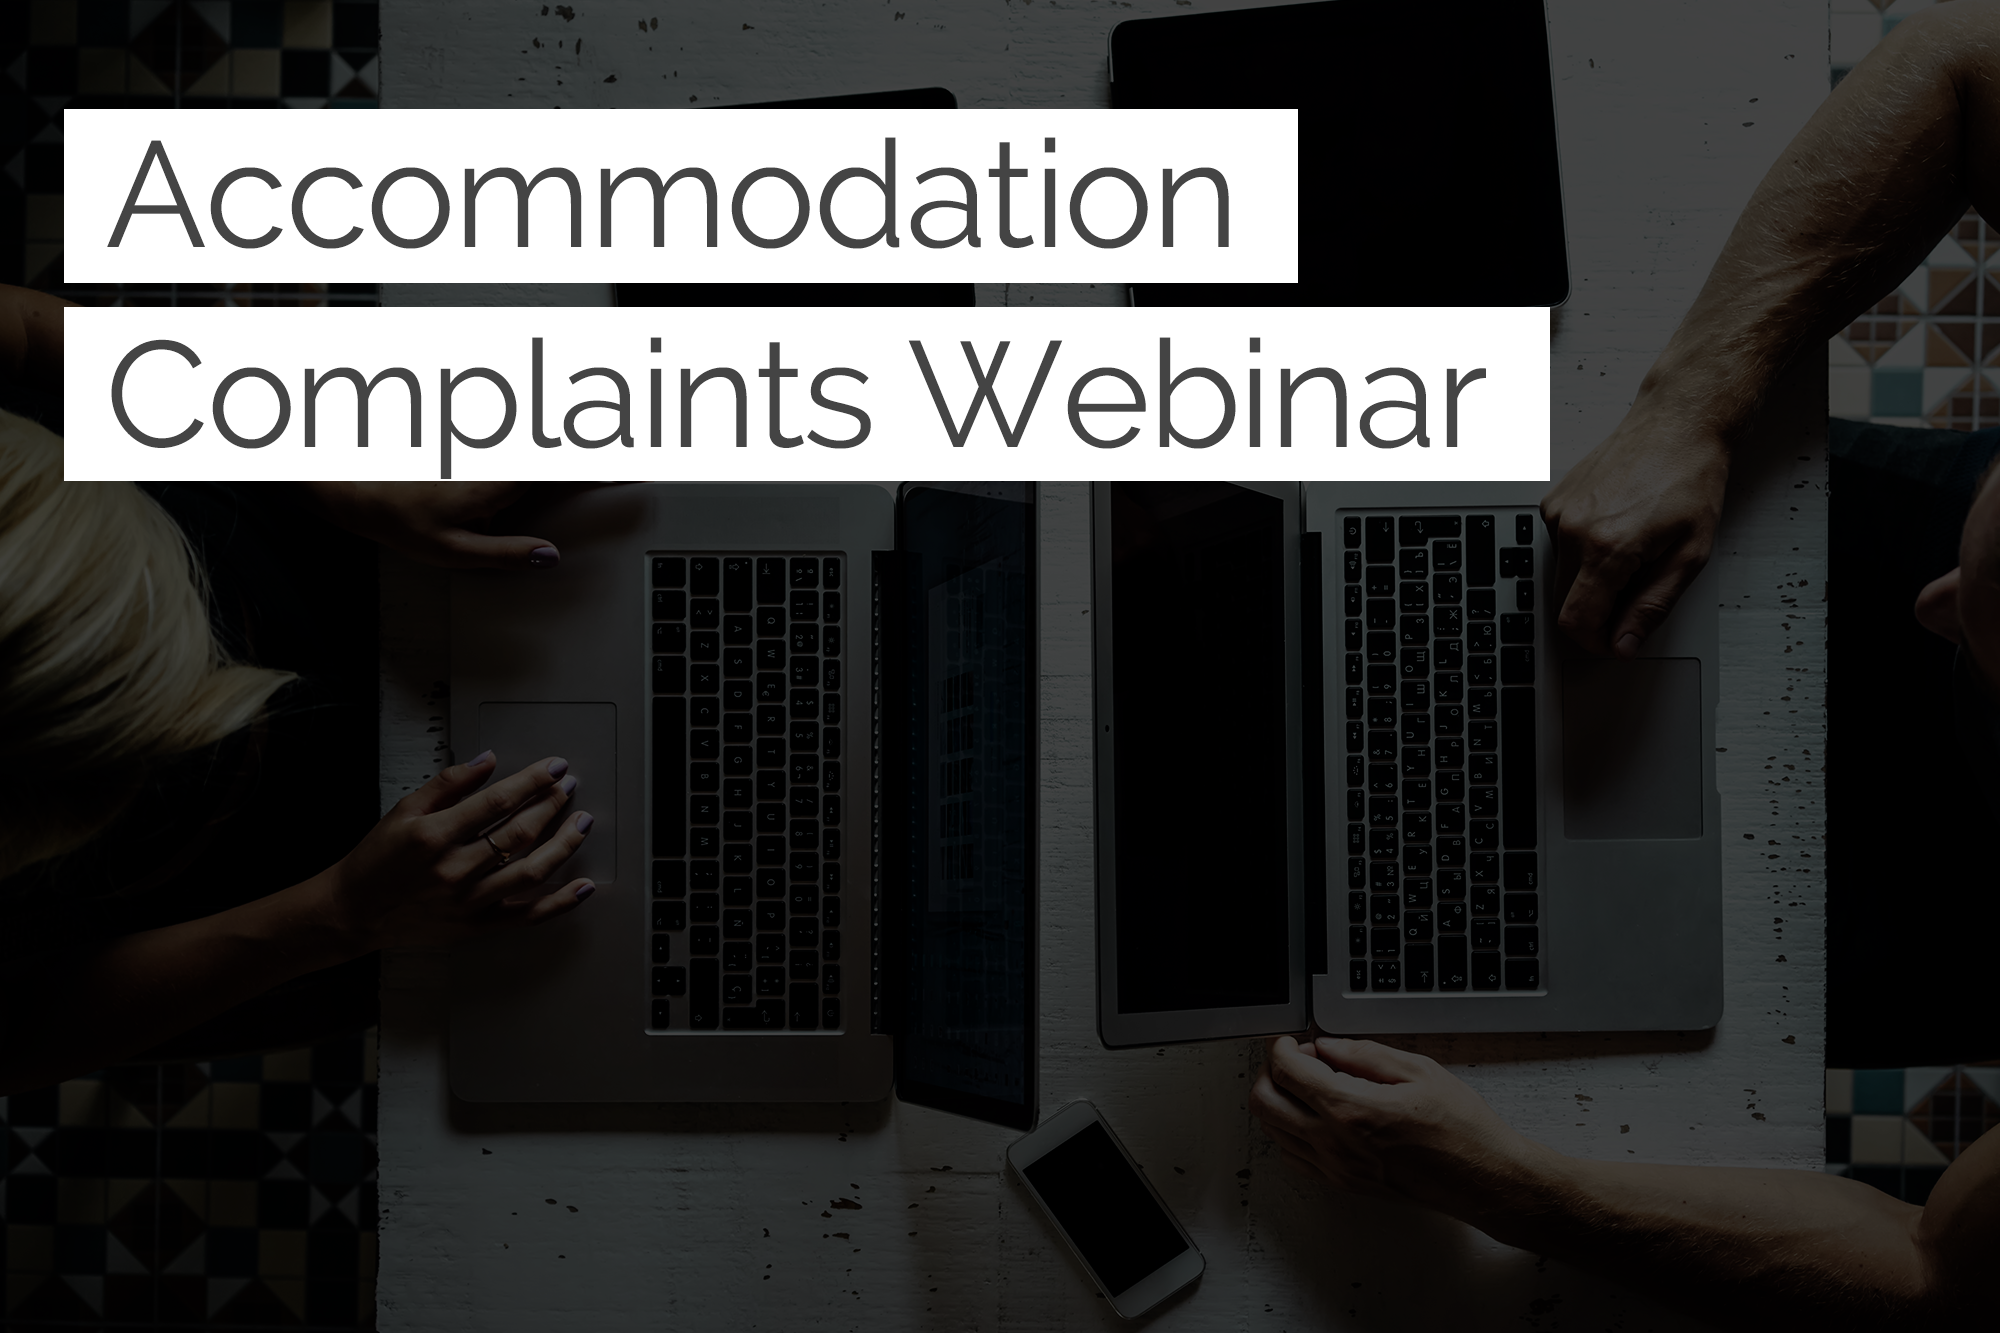 Accommodation Complaints Webinars